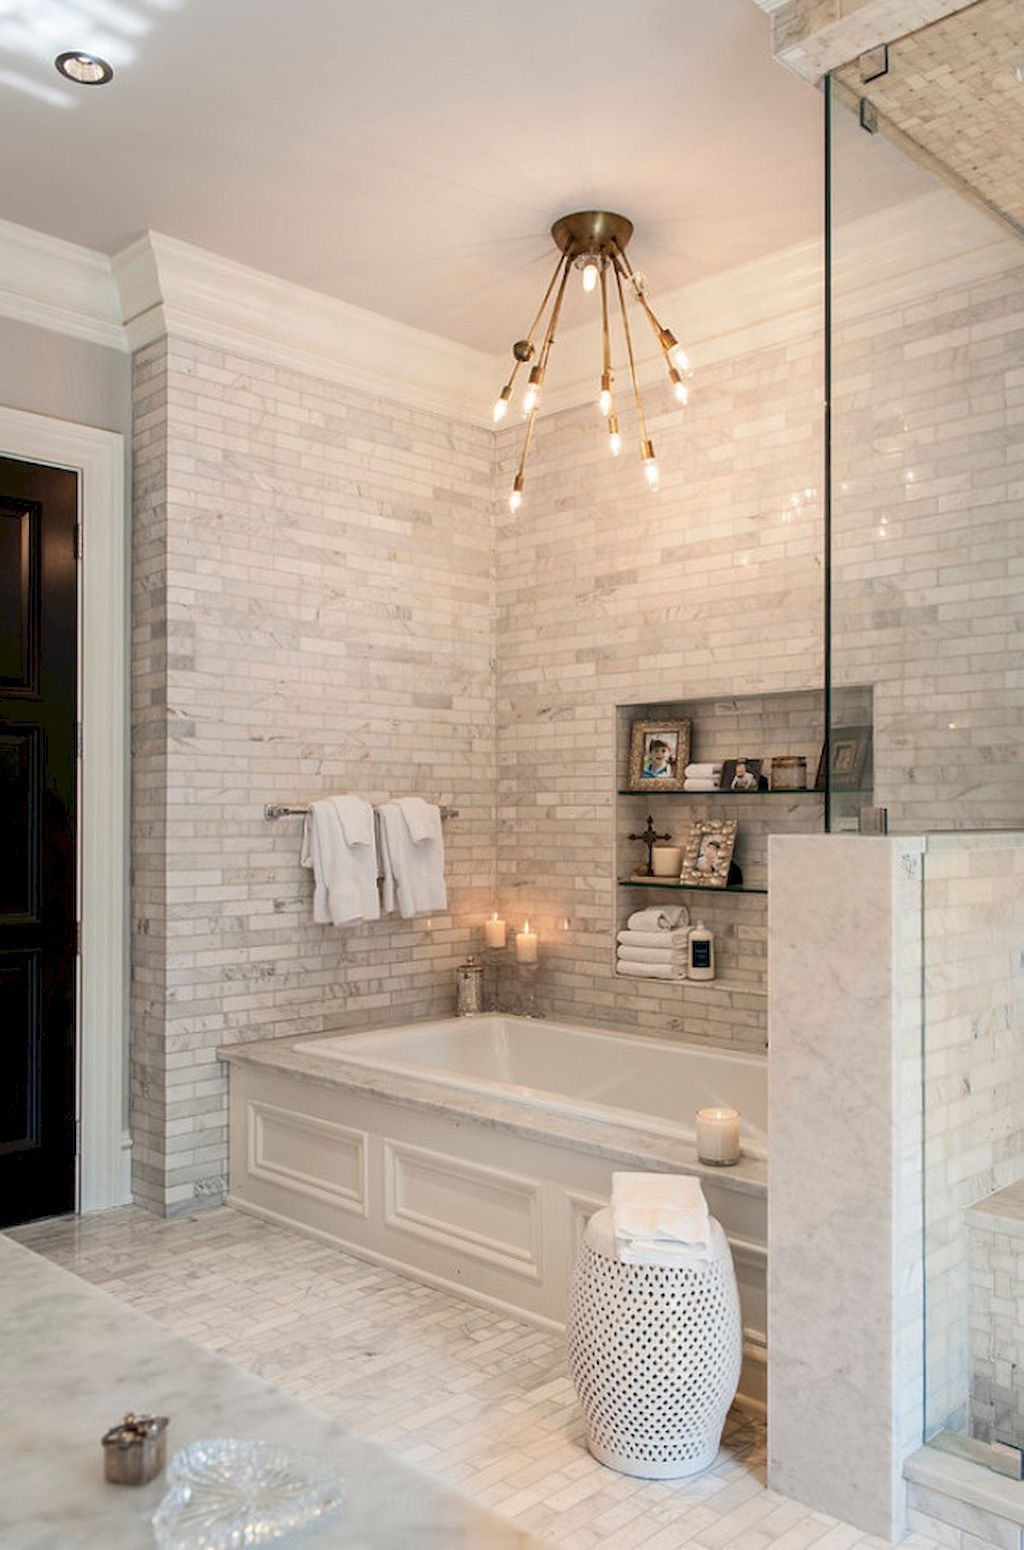 Brilliant Bathroom Remodel Ideas And Makeover Design 48